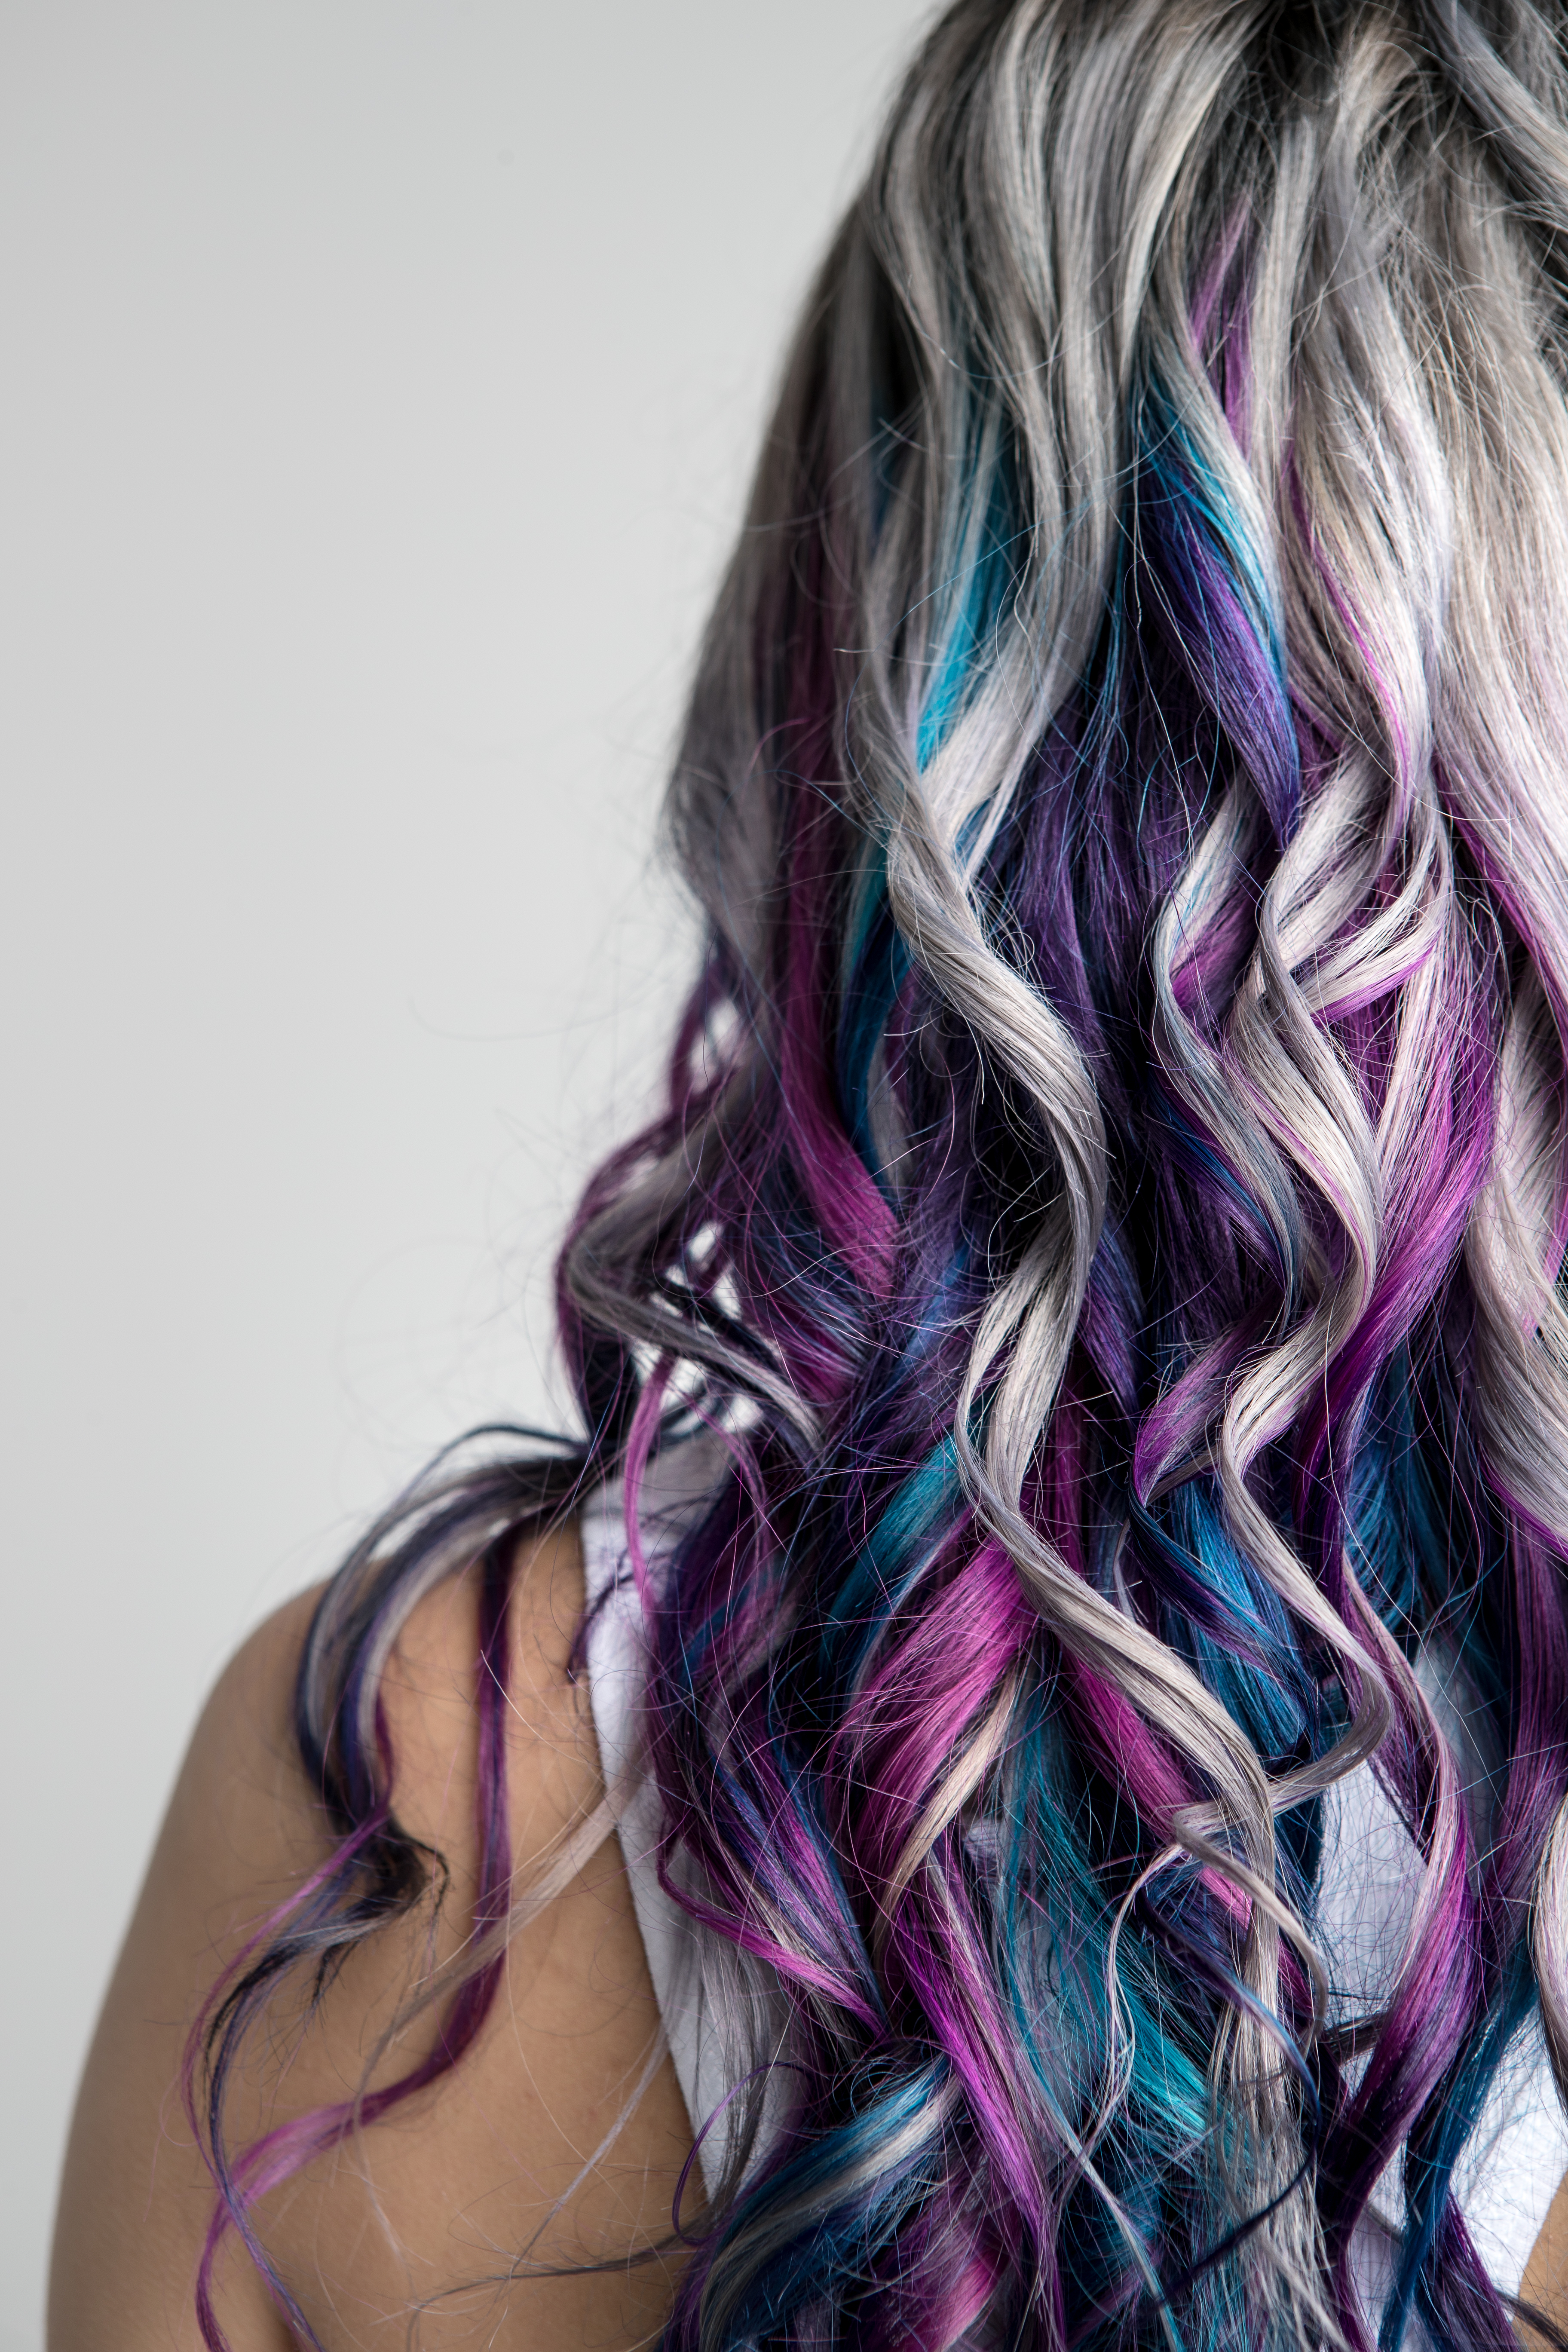 Back view of a long hair style. Hair is mostly silver with blue and purple streaks mixed at the ends.